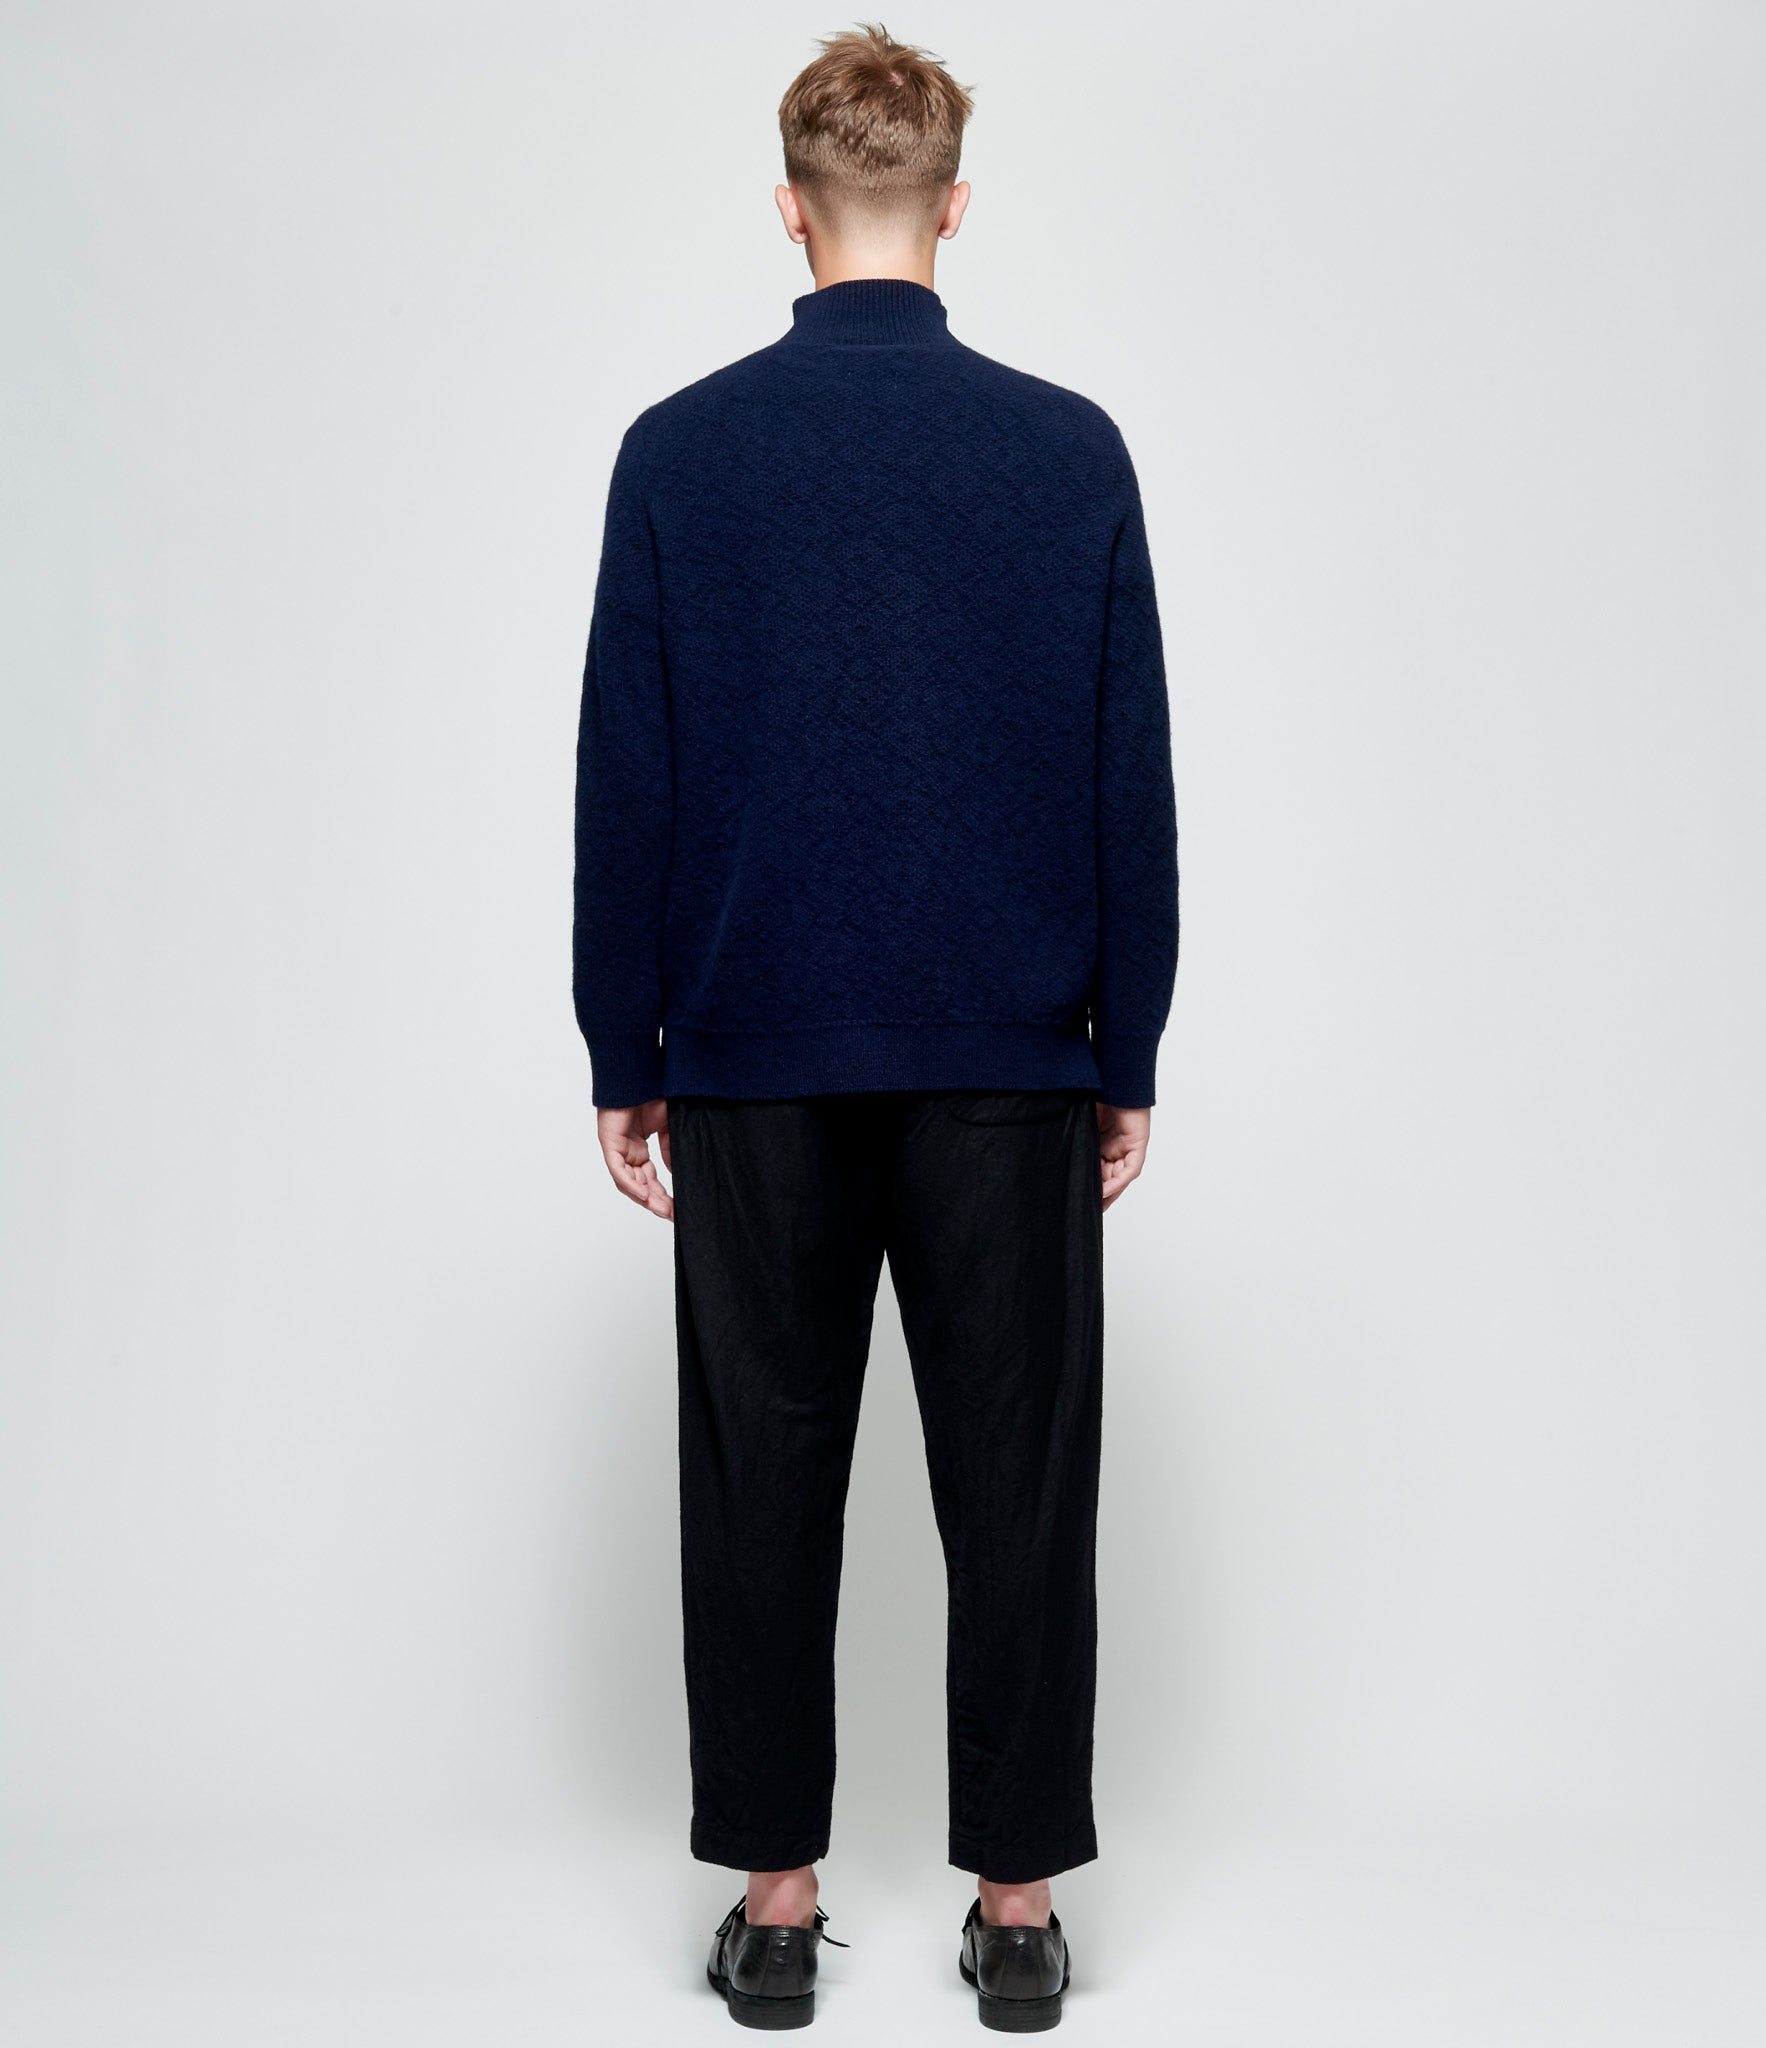 Casey Casey Wool Knit Turtleneck Pullover Sweater